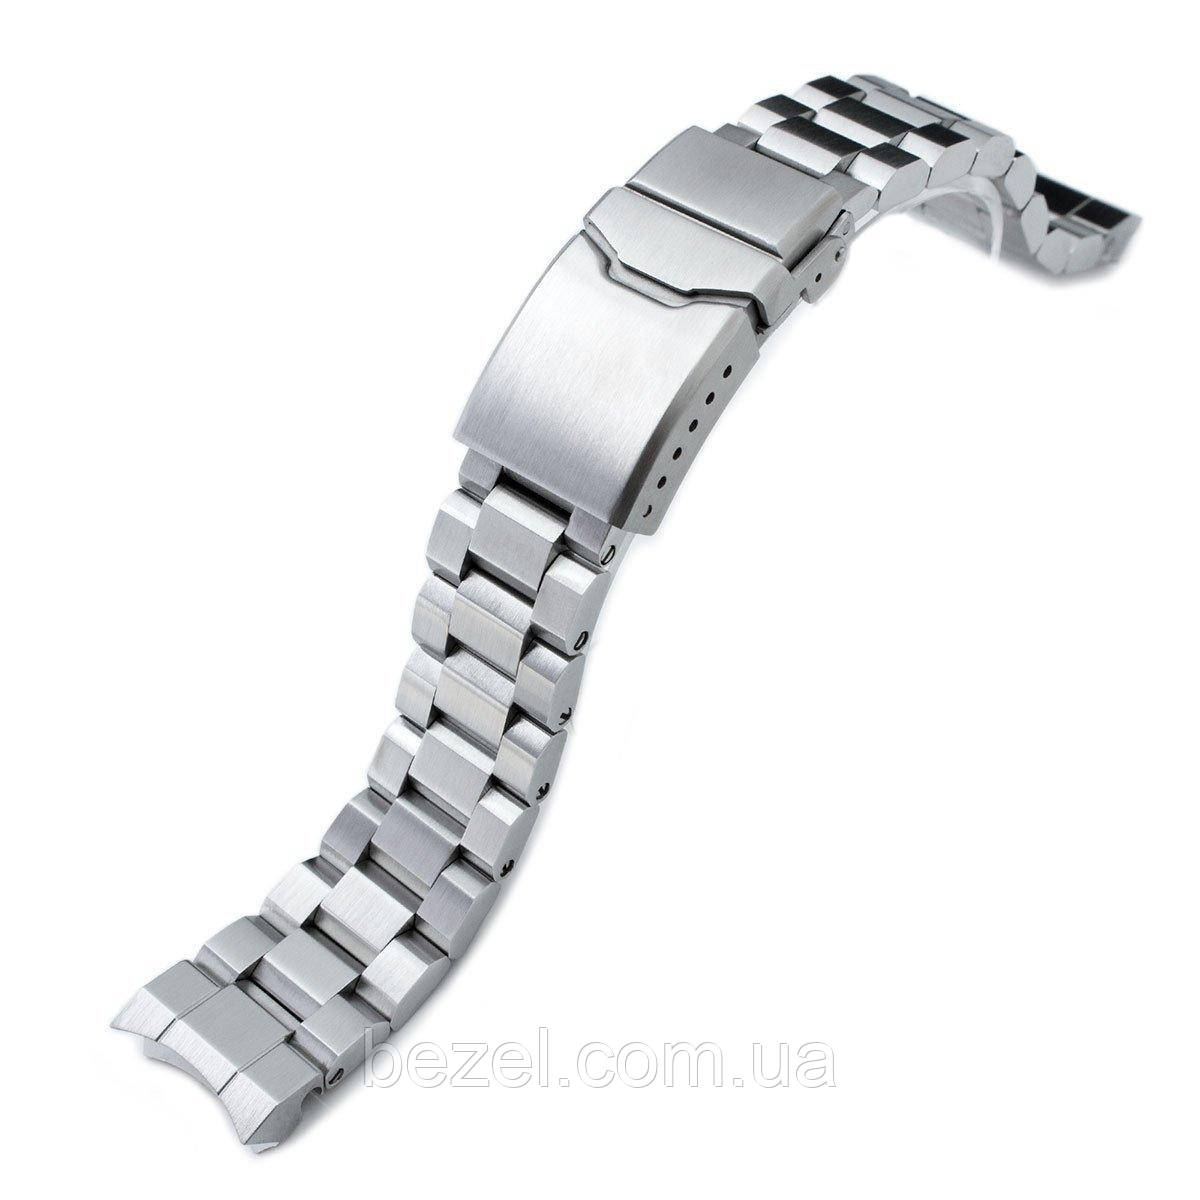 20mm Hexad Oyster 316L Stainless Steel Watch Band for Sumo SBDC001, Button Chamfer